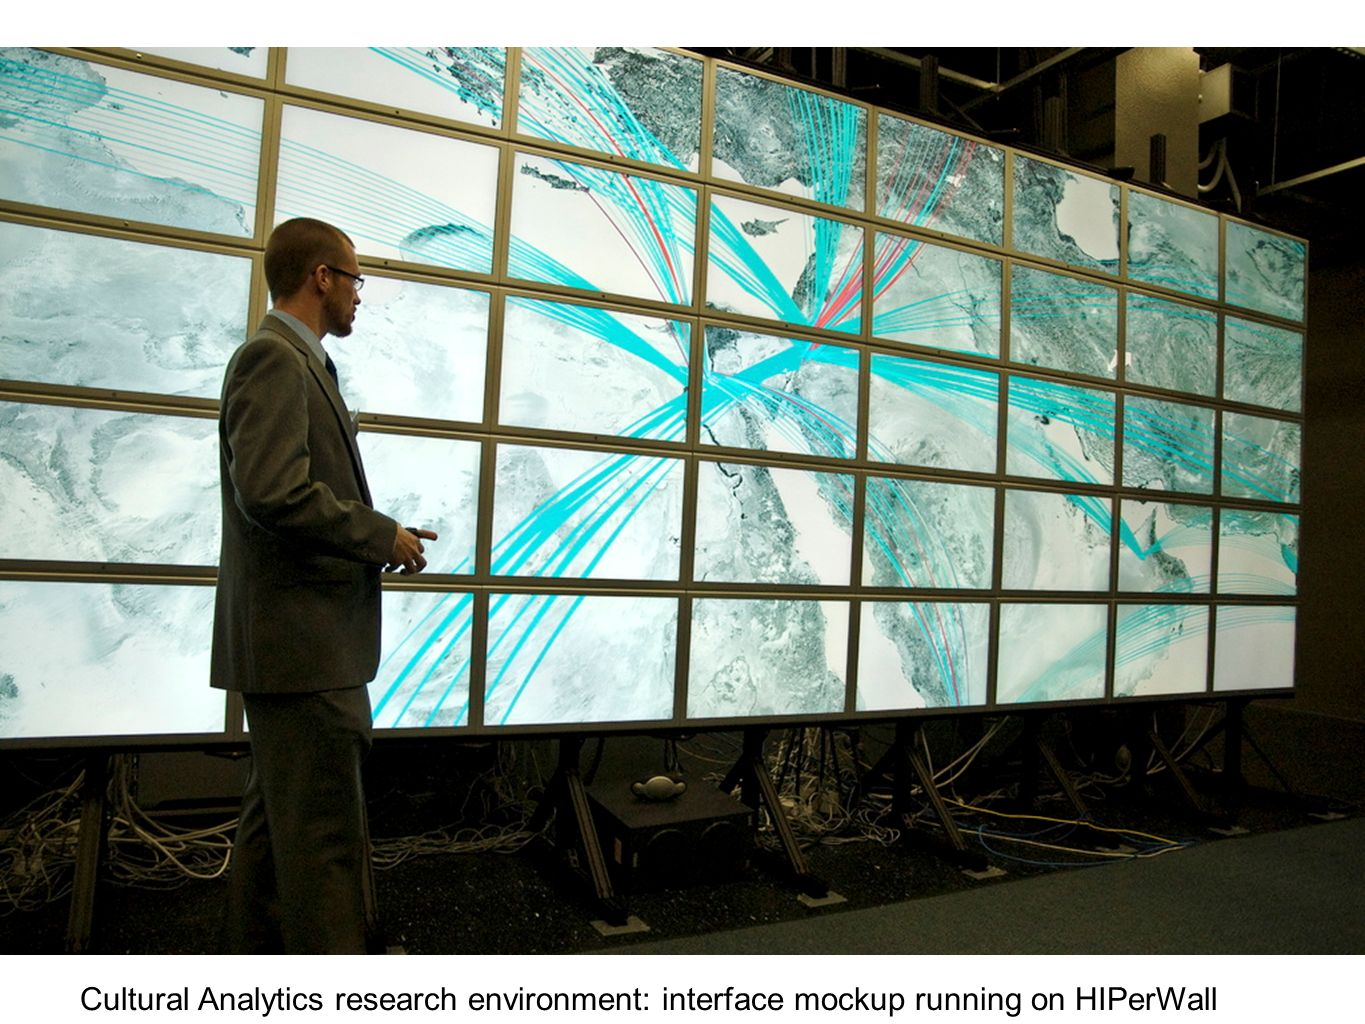 Cultural Analytics research environment: interface mockup running on HIPerWall